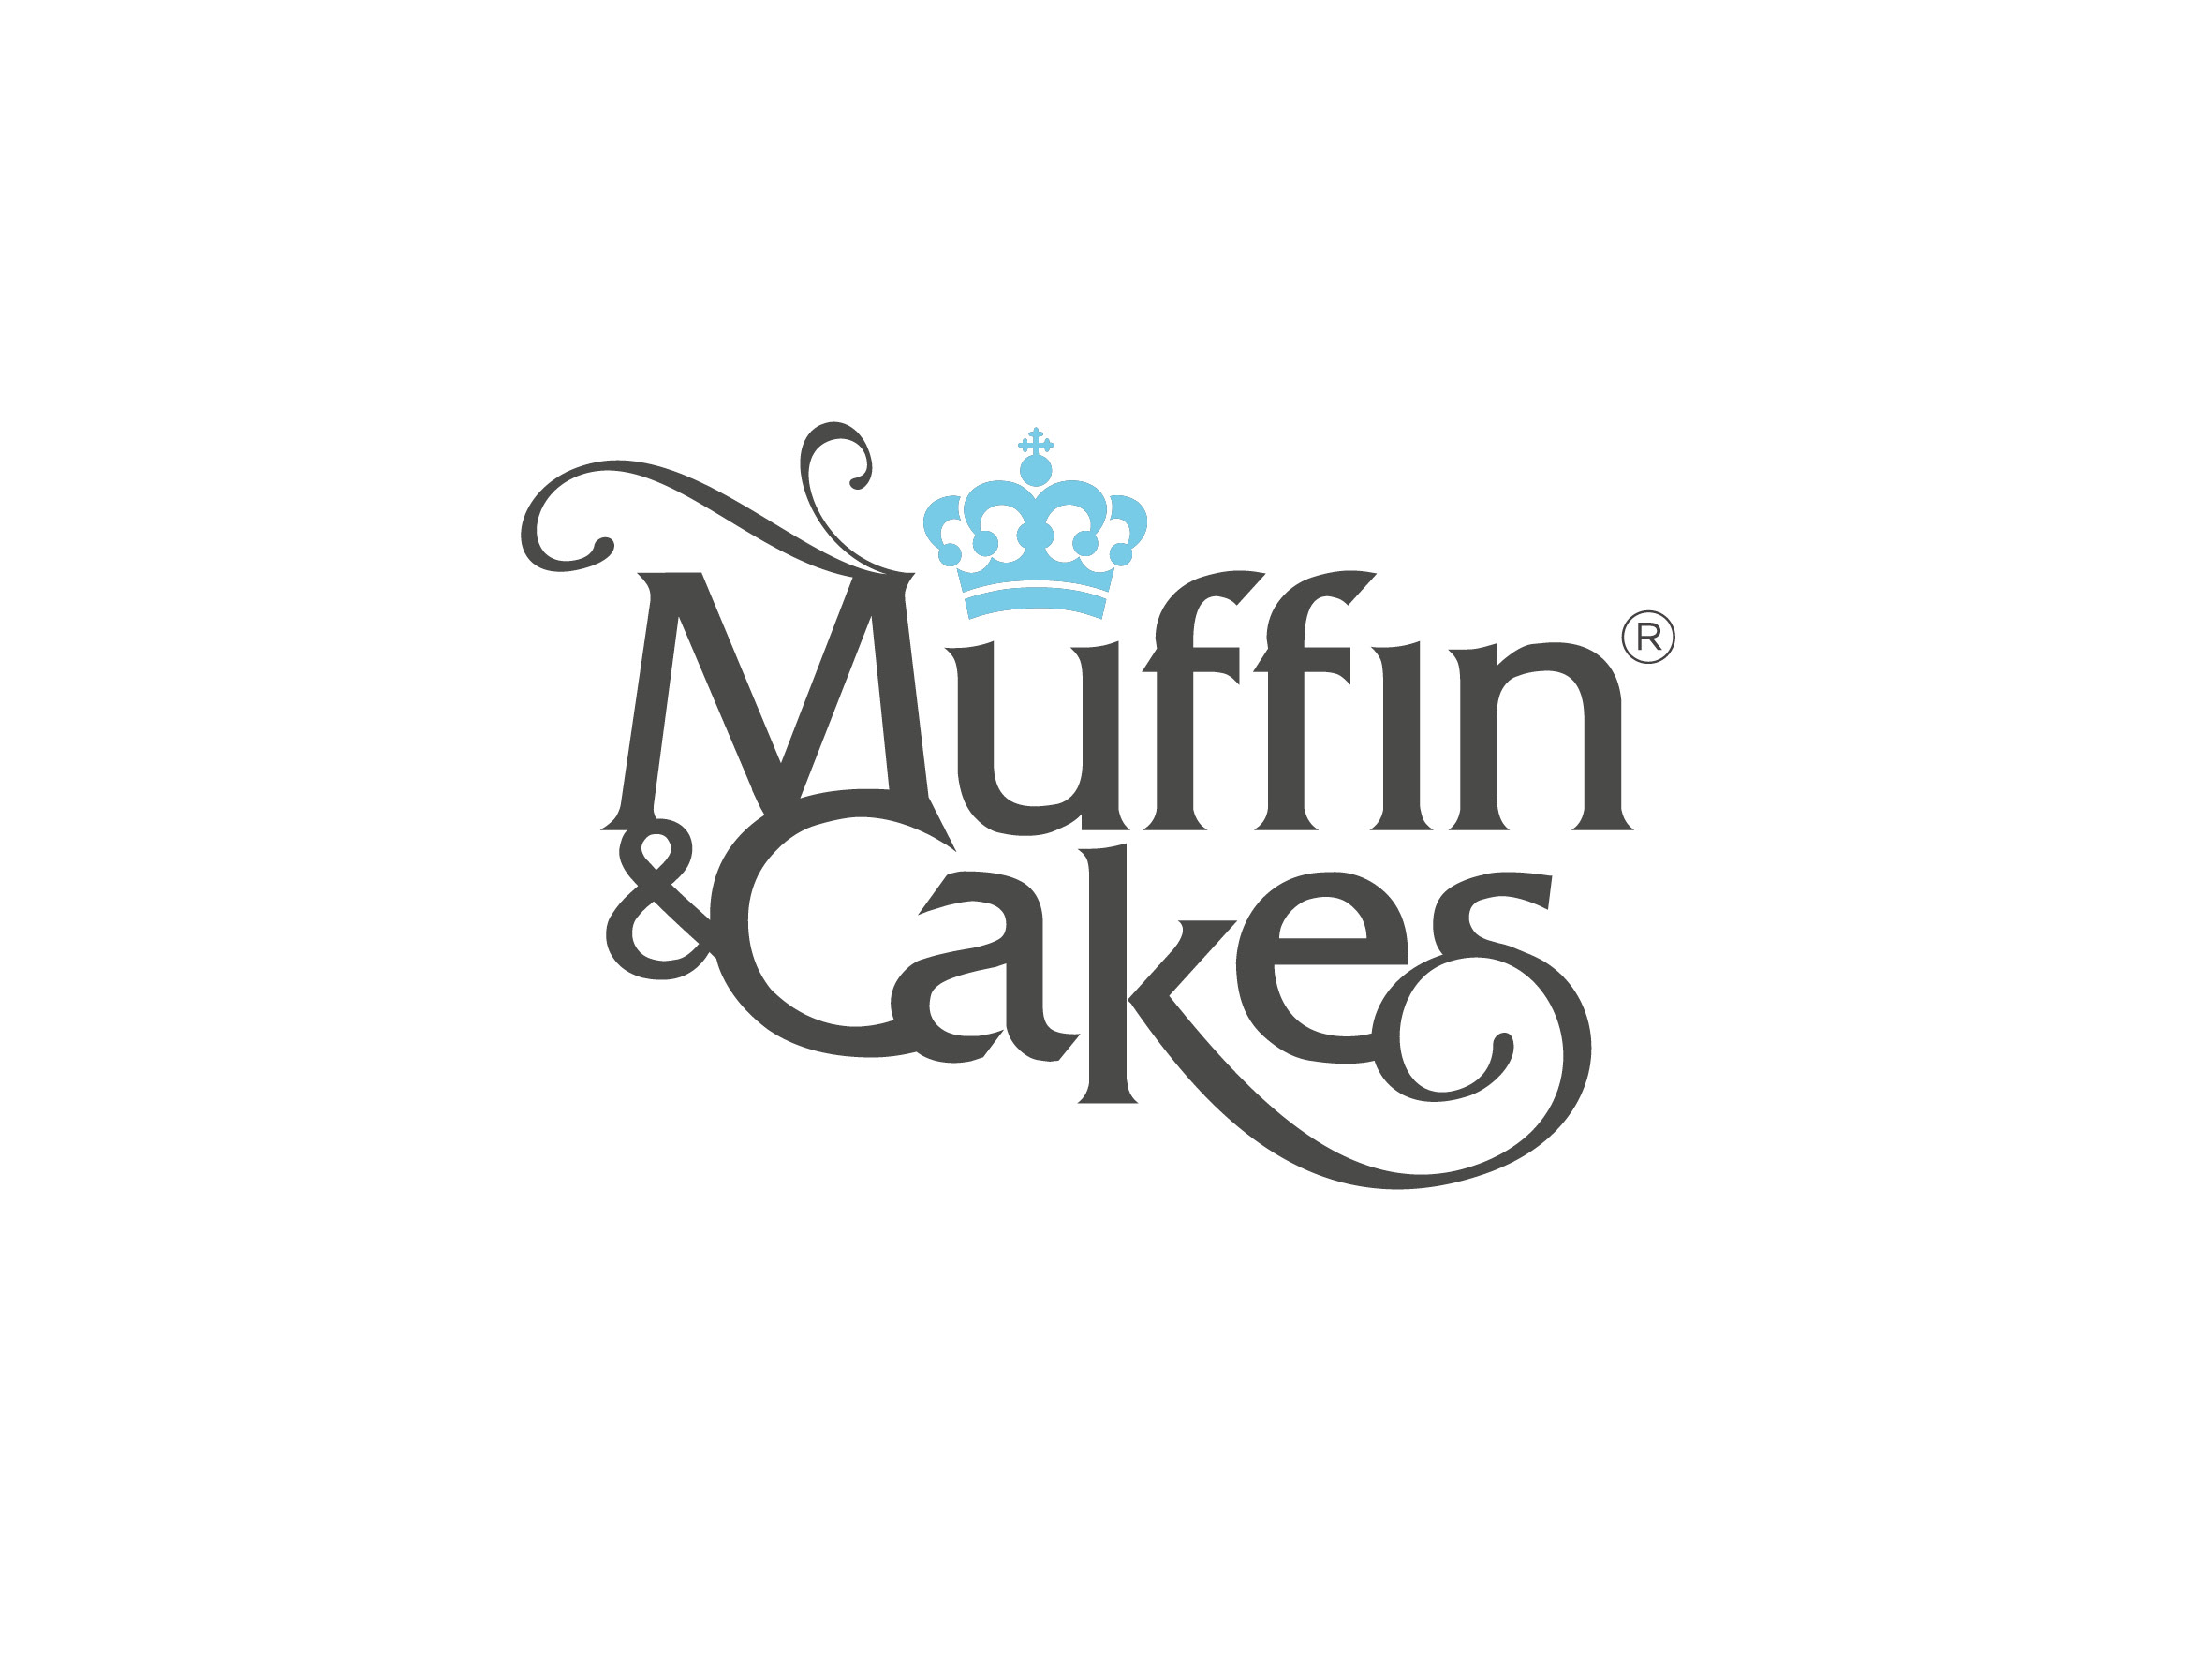 muffin&Cakes logo